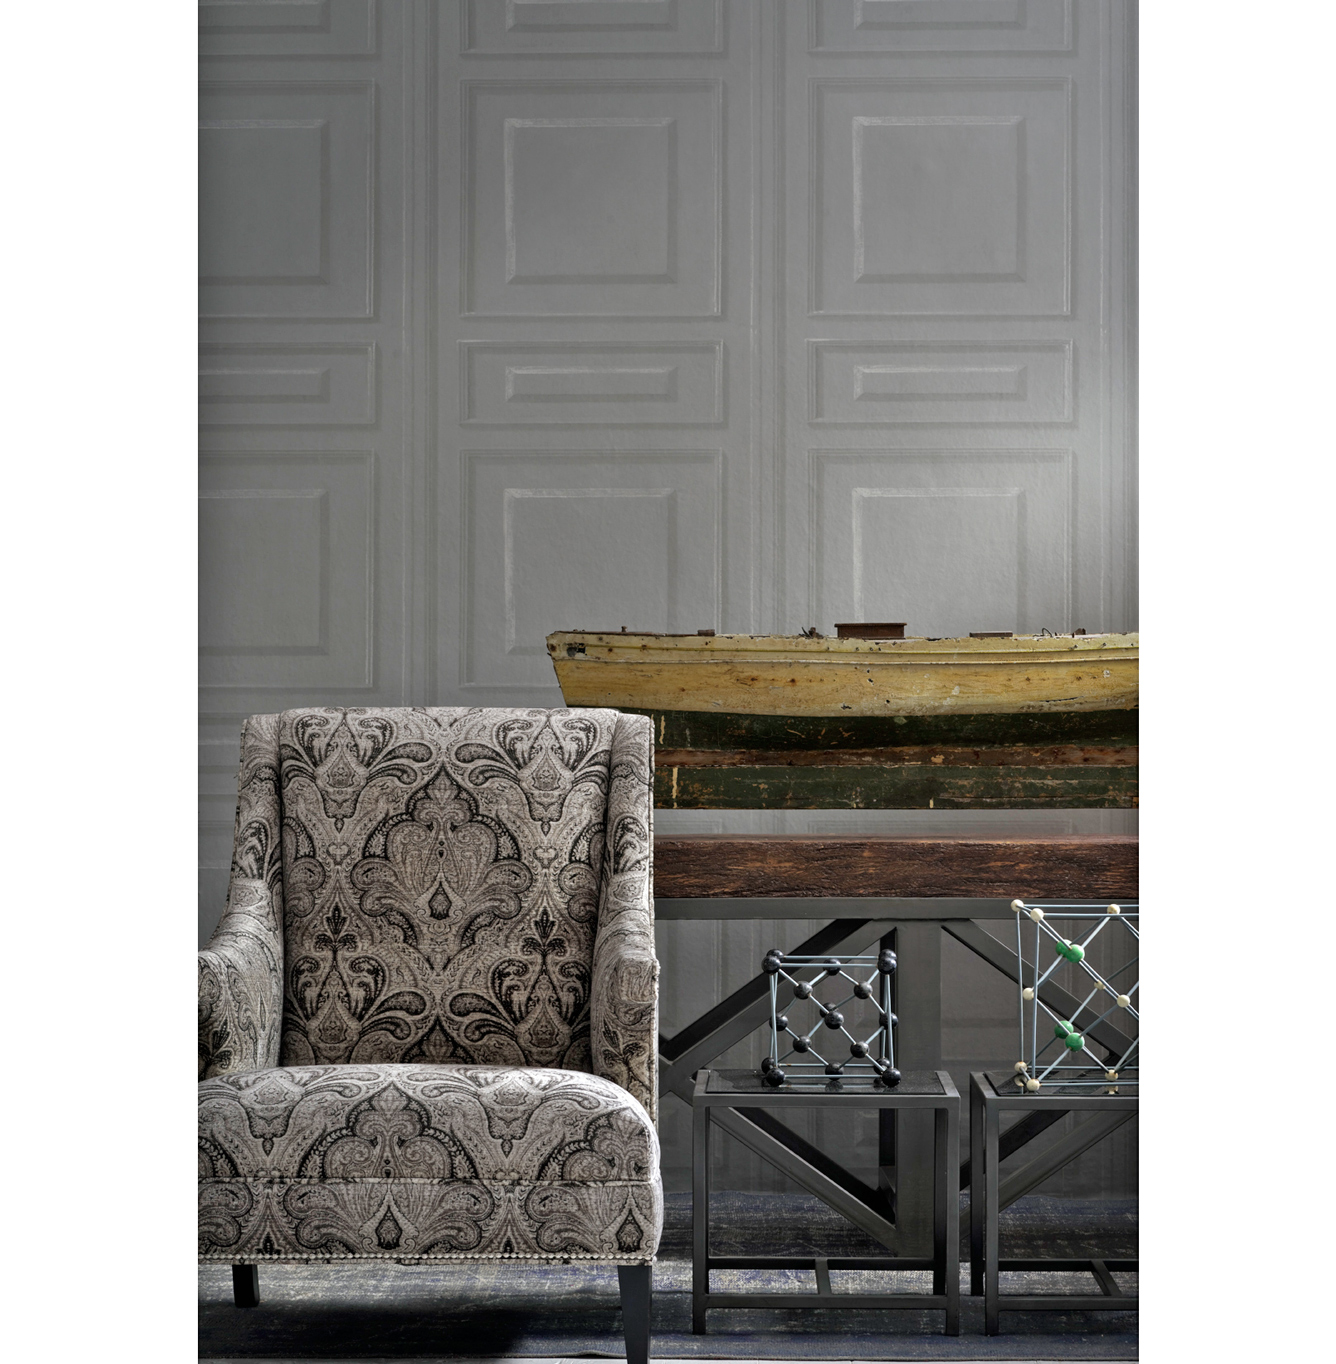 French Wood Moulding Panel Wallpaper - Charcoal - 2 Rolls